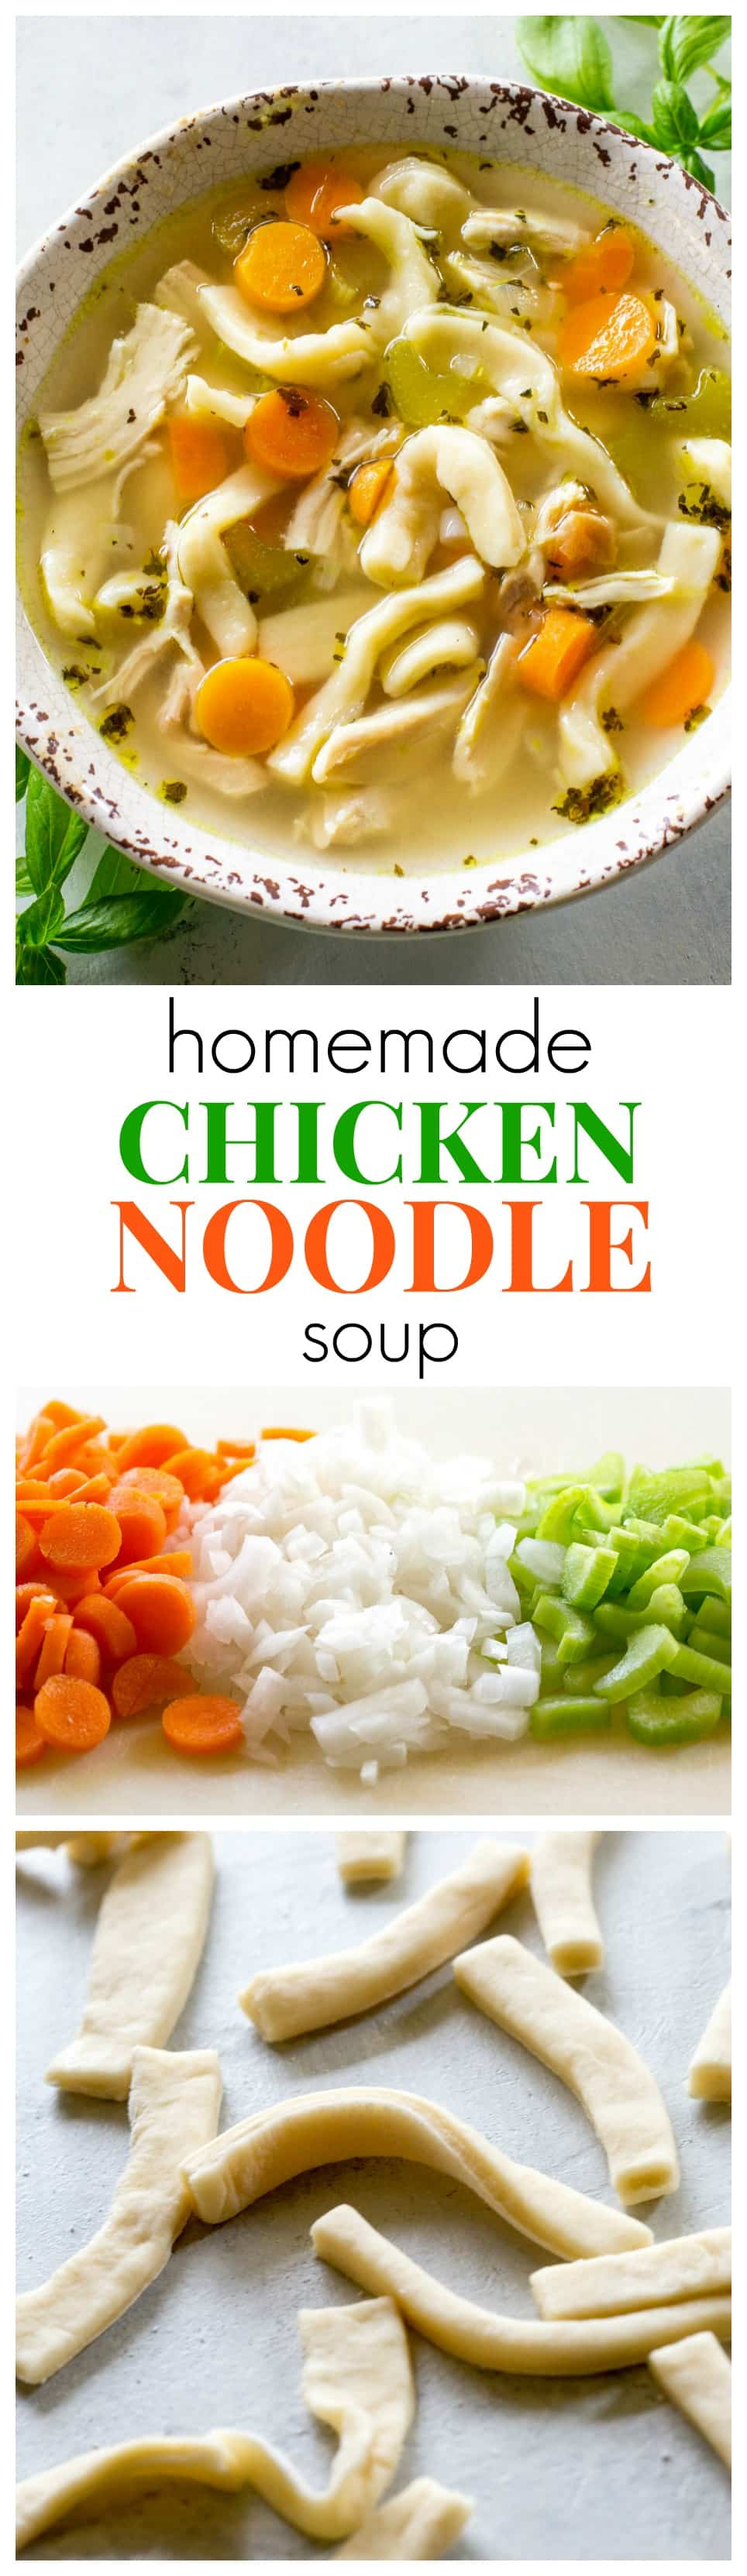 Homemade Chicken Noodle Soup - tried and true comfort food. A recipe for homemade noodles too but you can use store bought as well. #best #easy #homemade #chicken #noodle #soup #recipe #dinner